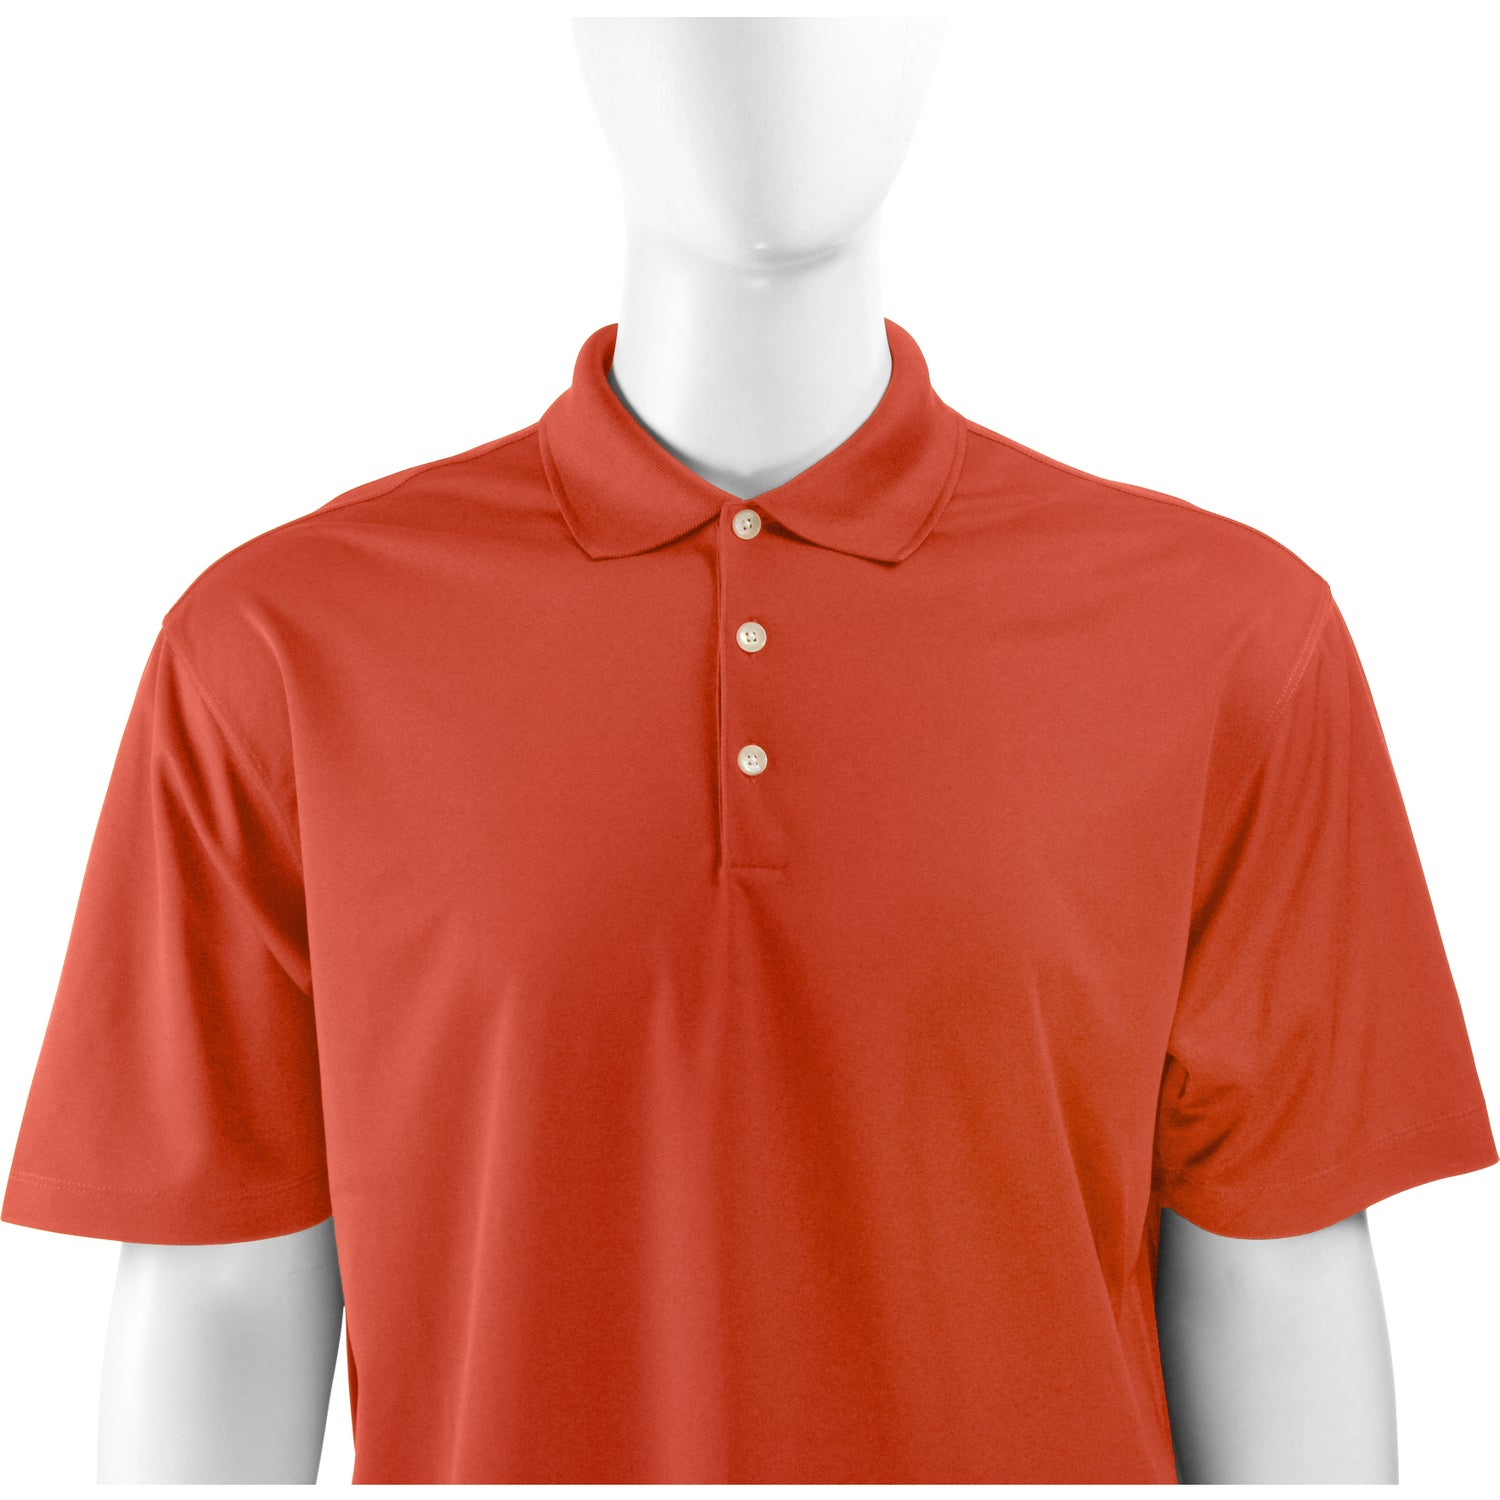 Nike golf dri fit micro pique polo shirt embroidered for Dri fit material shirts